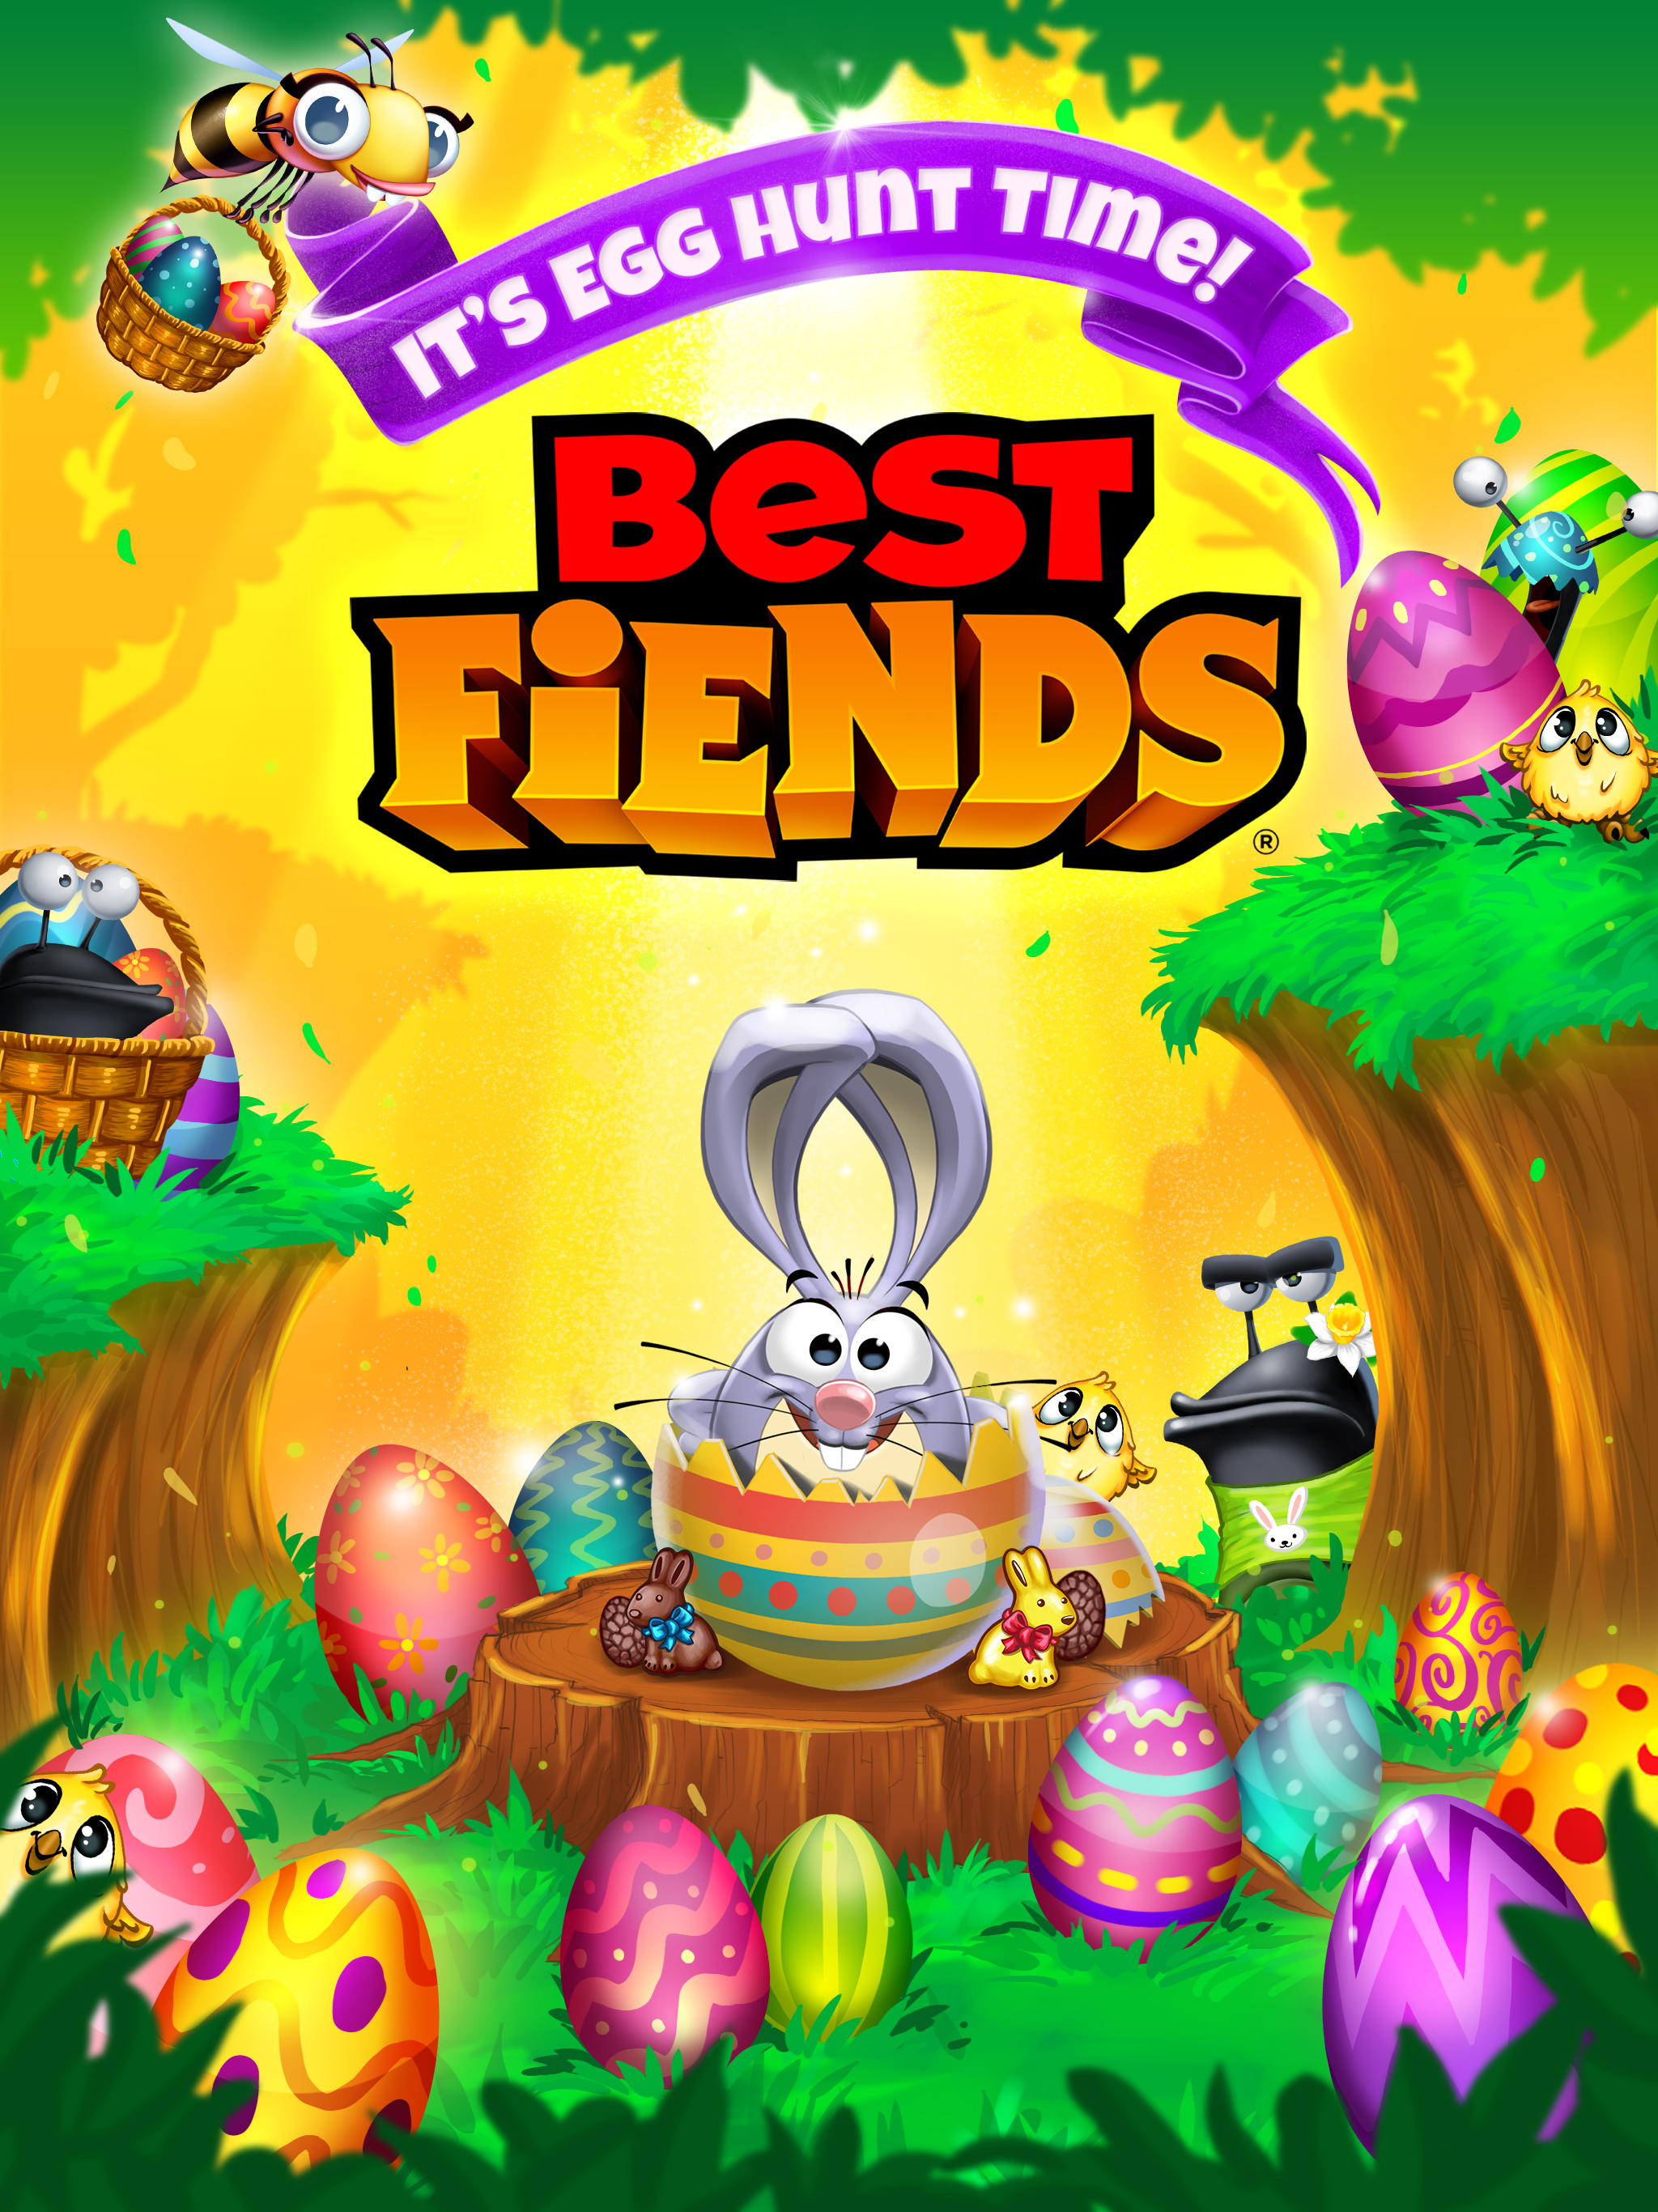 Best Fiends Egg Hunt 2019 It's Time for the Best Fiends Easter Egg Hunt!   Seriously